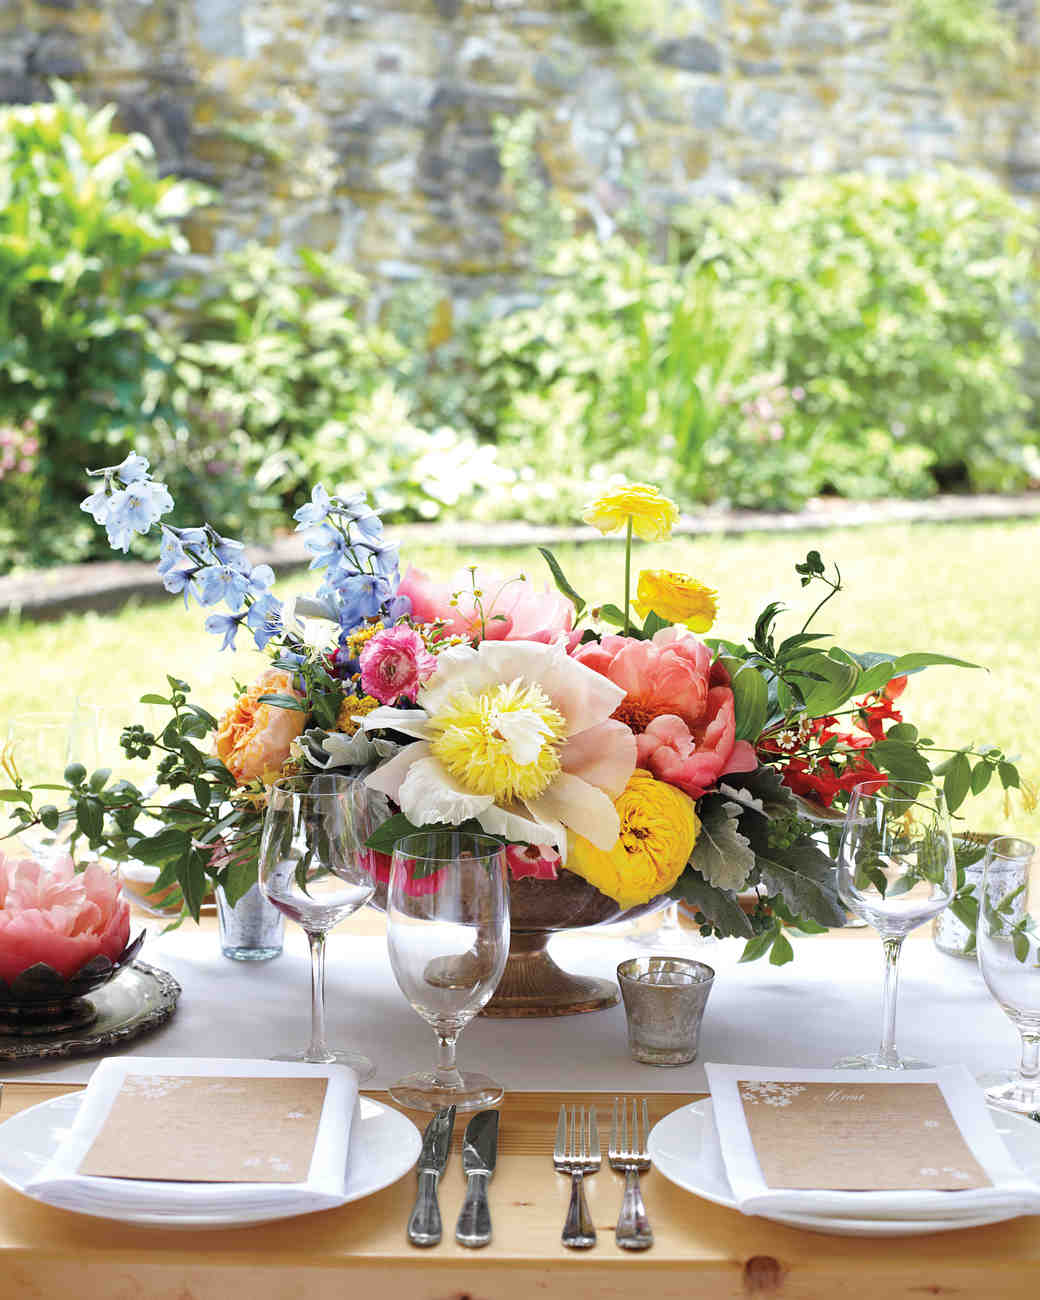 40 of our favorite floral wedding centerpieces martha stewart 40 of our favorite floral wedding centerpieces martha stewart weddings junglespirit Gallery